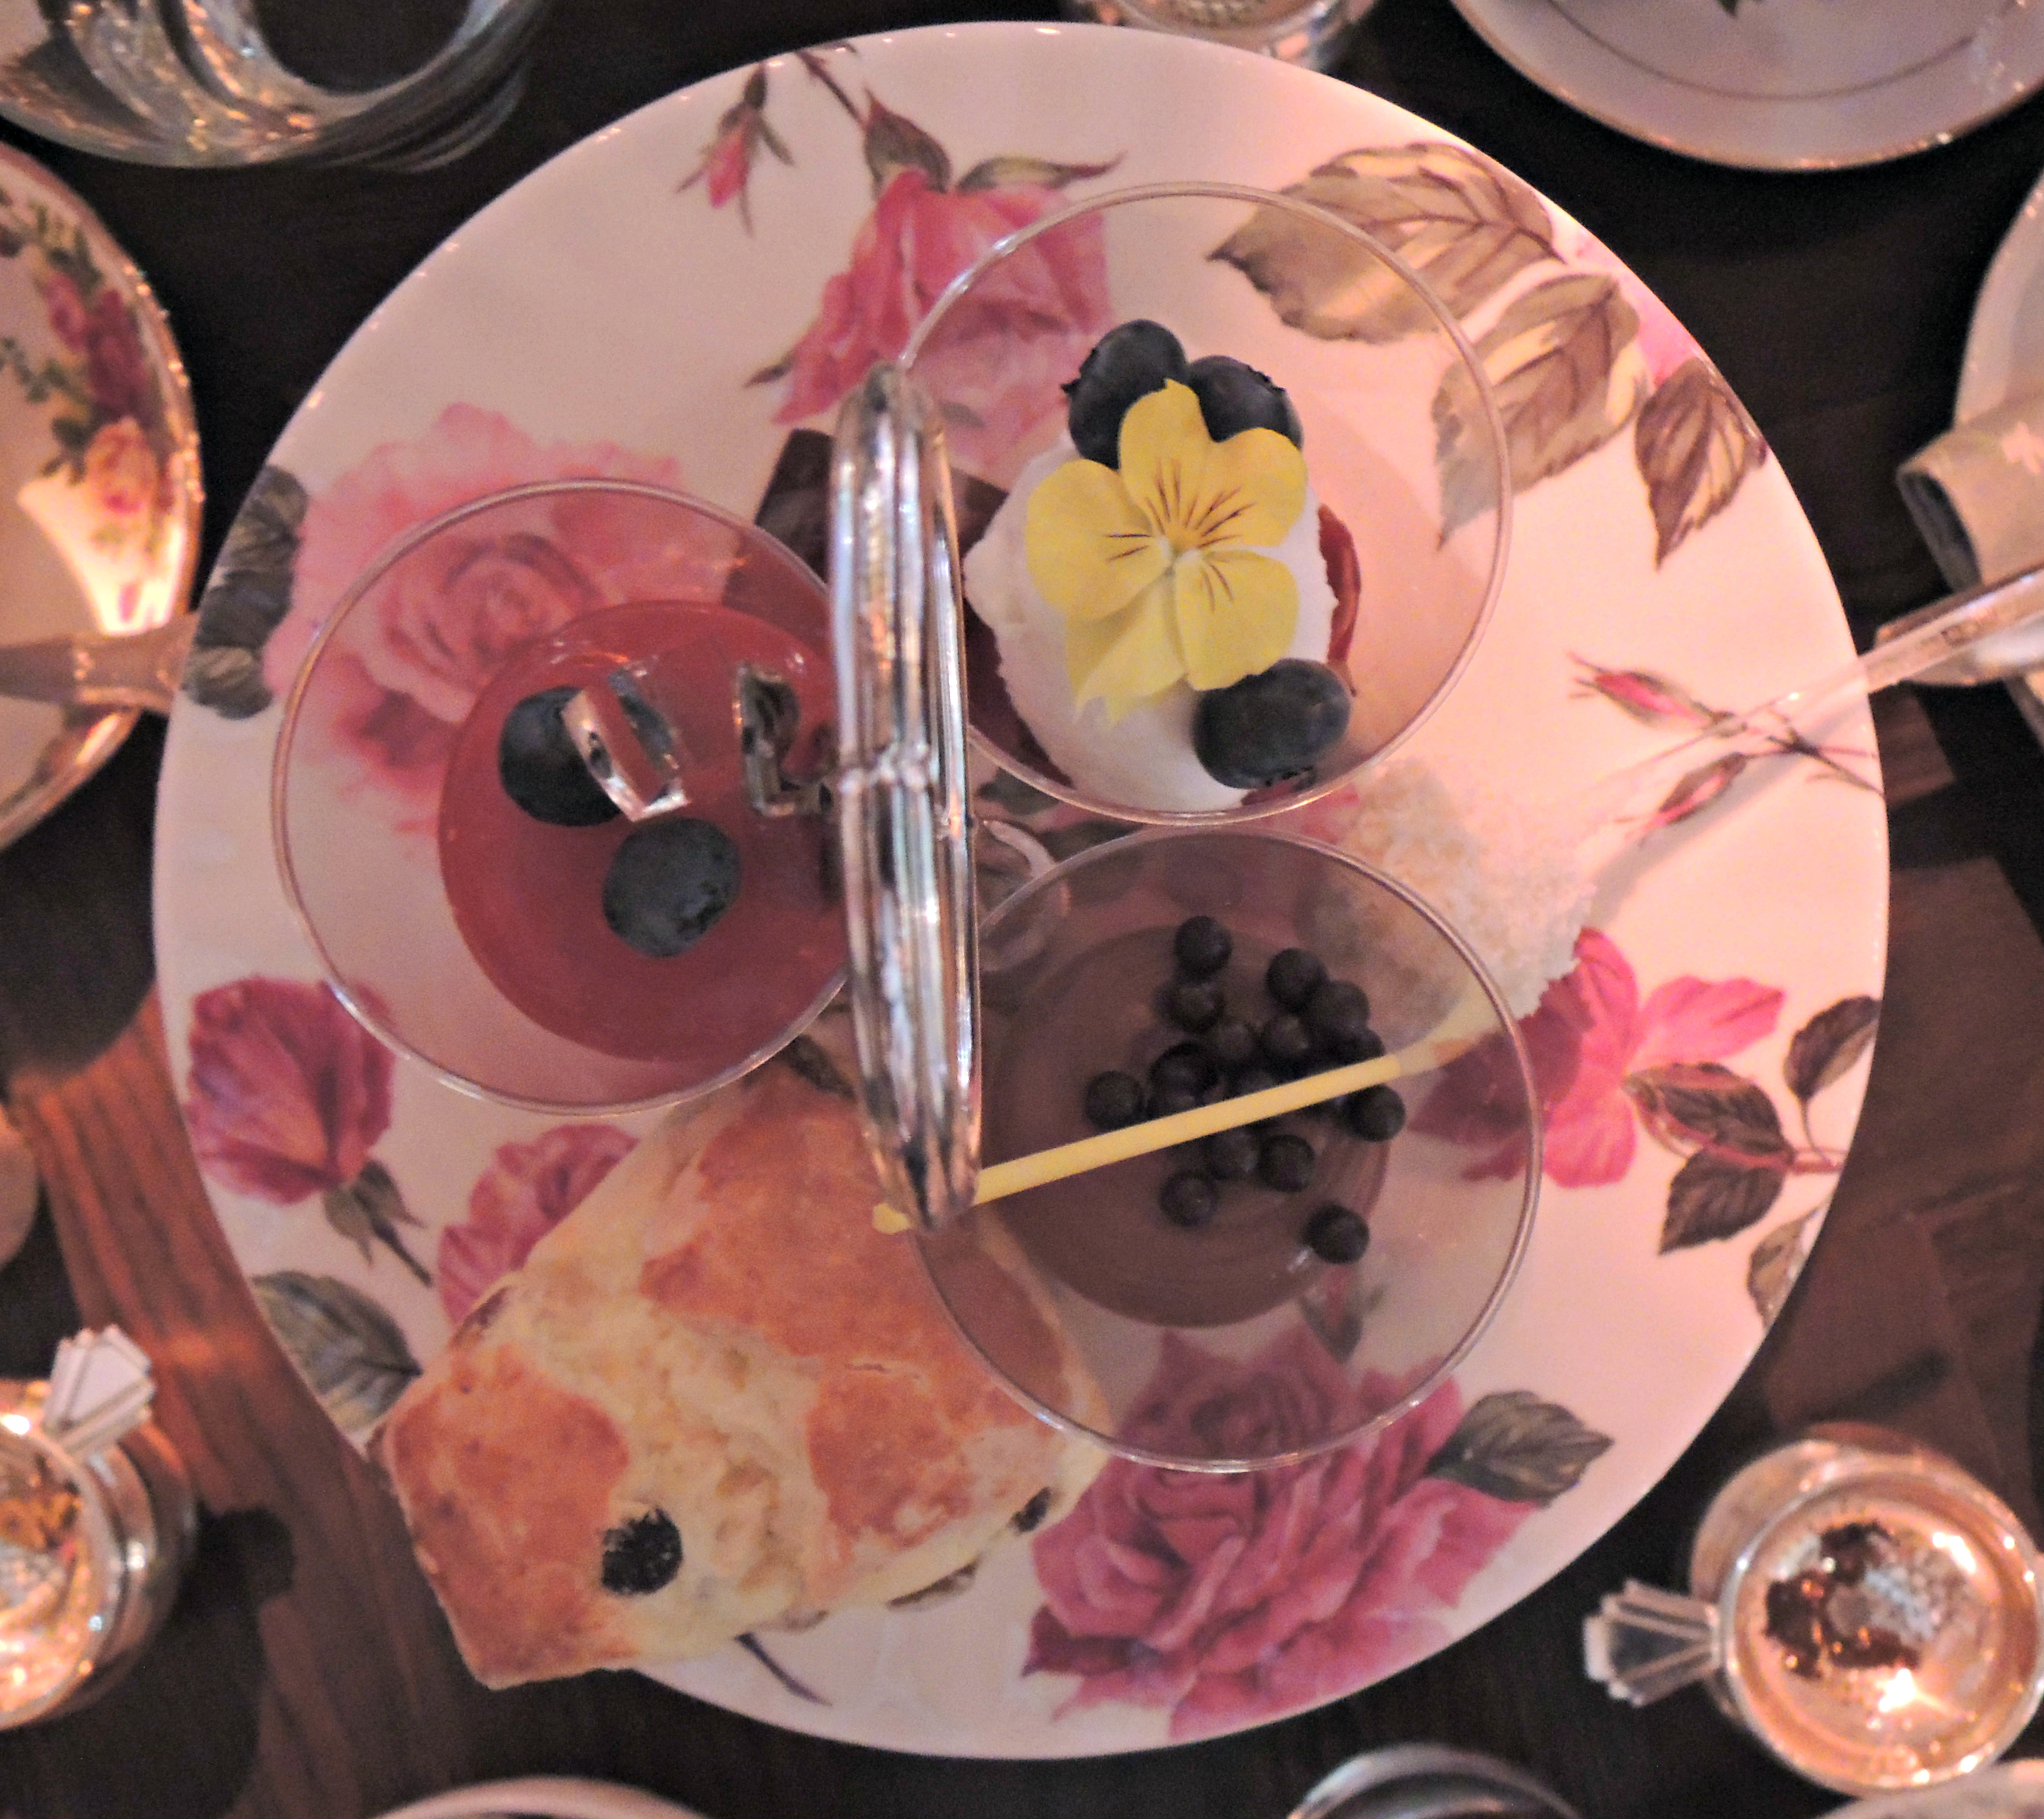 Afternoon Tea At Sketch - Around The World In 80 Pairs Of Shoes